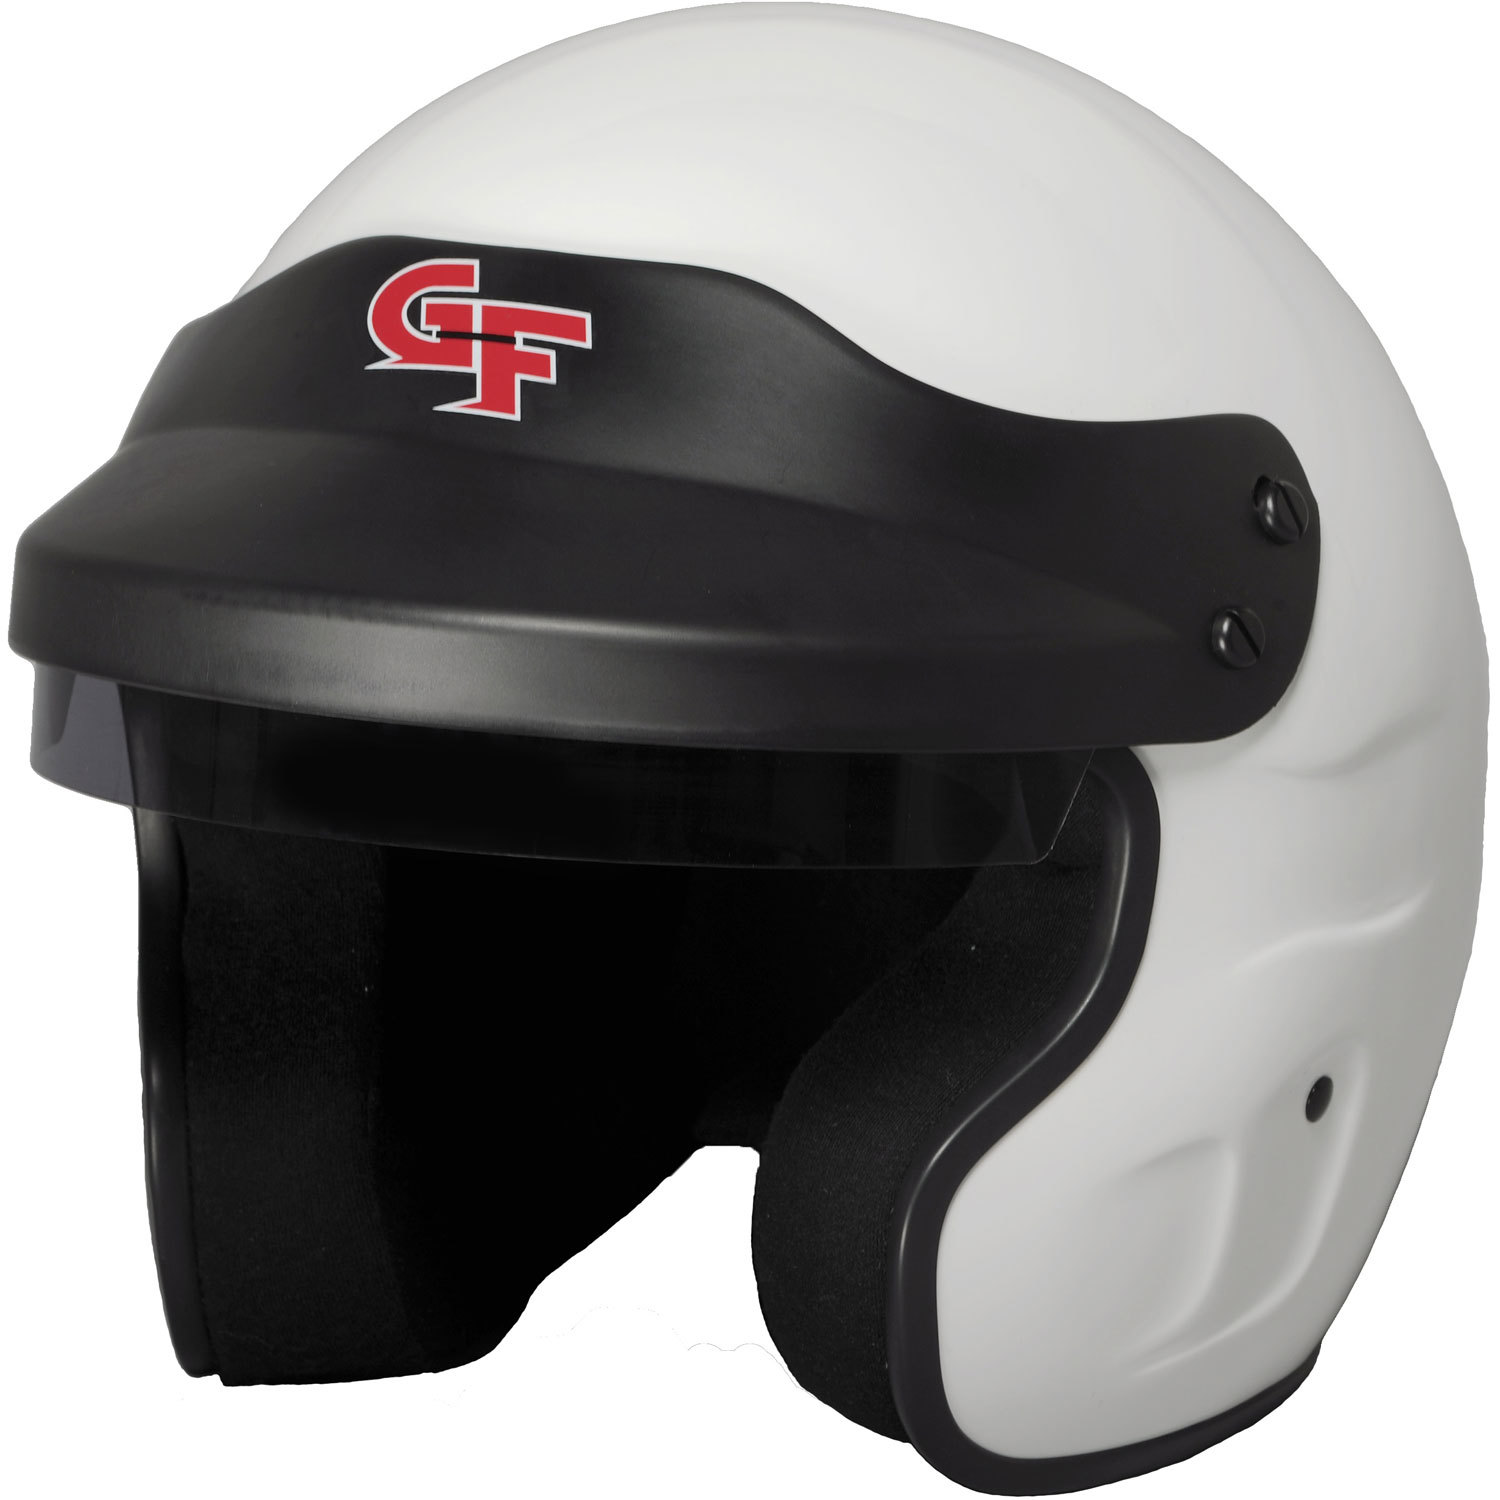 G-Force 3121XLGWH Helmet, GF1, Open Face, Snell SA2015, Head and Neck Support Ready, White, X-Large, Each